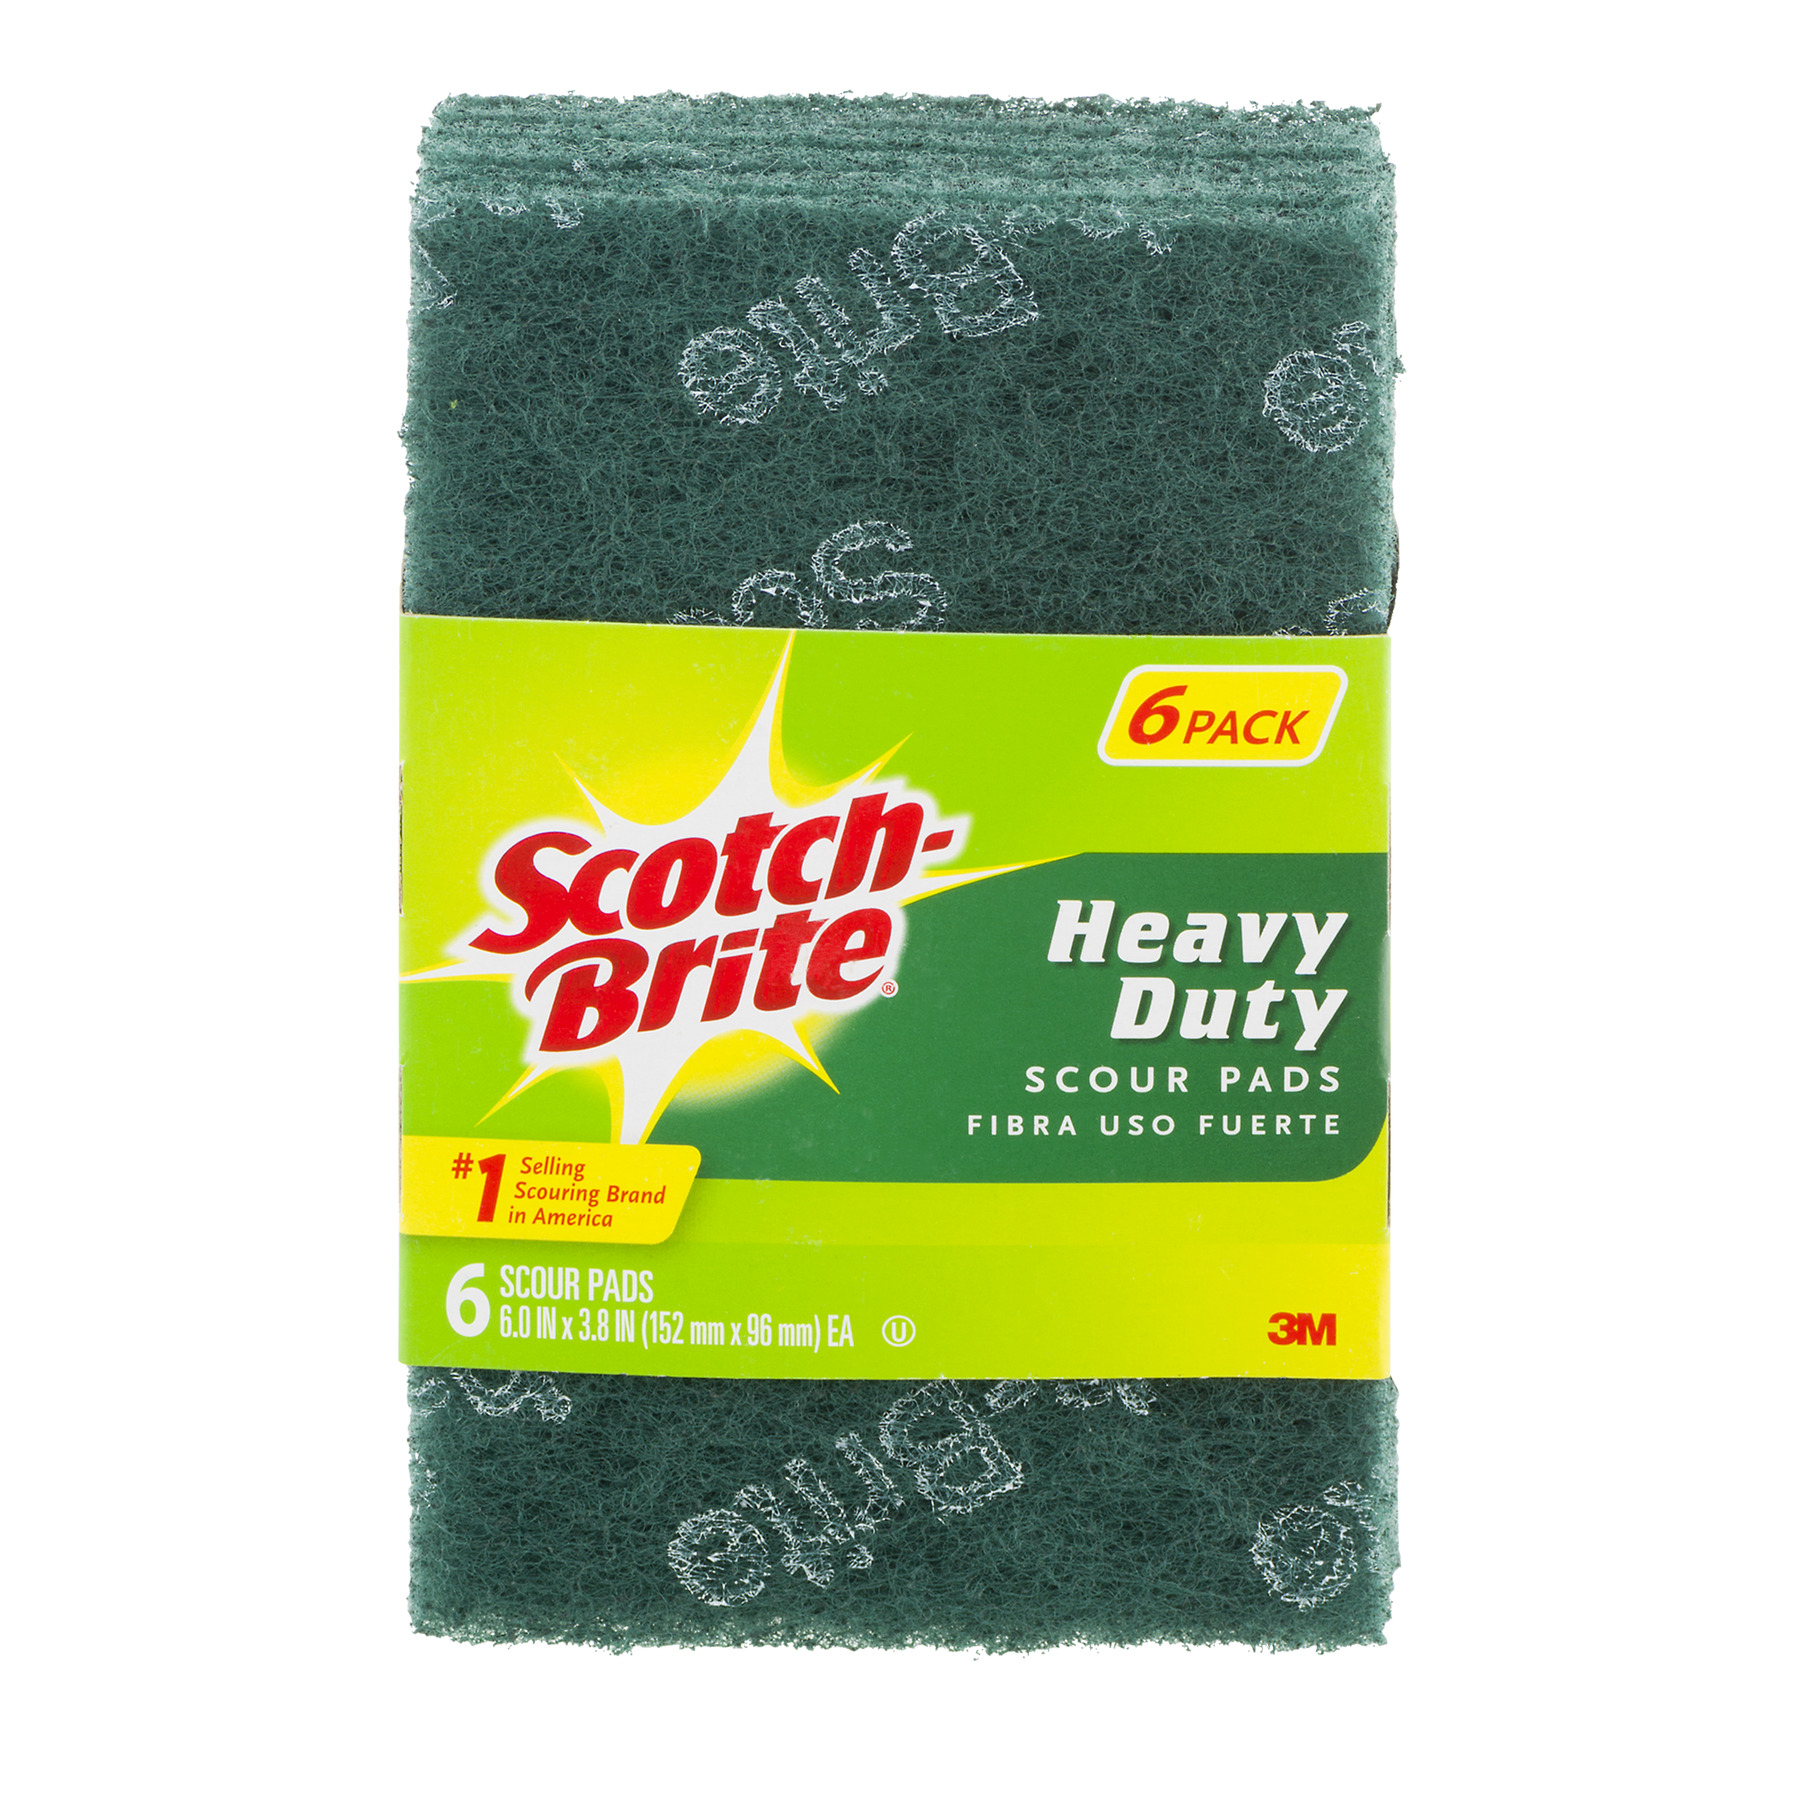 Scotch-Brite Heavy Duty Scour Pad 6 Pads per Pack